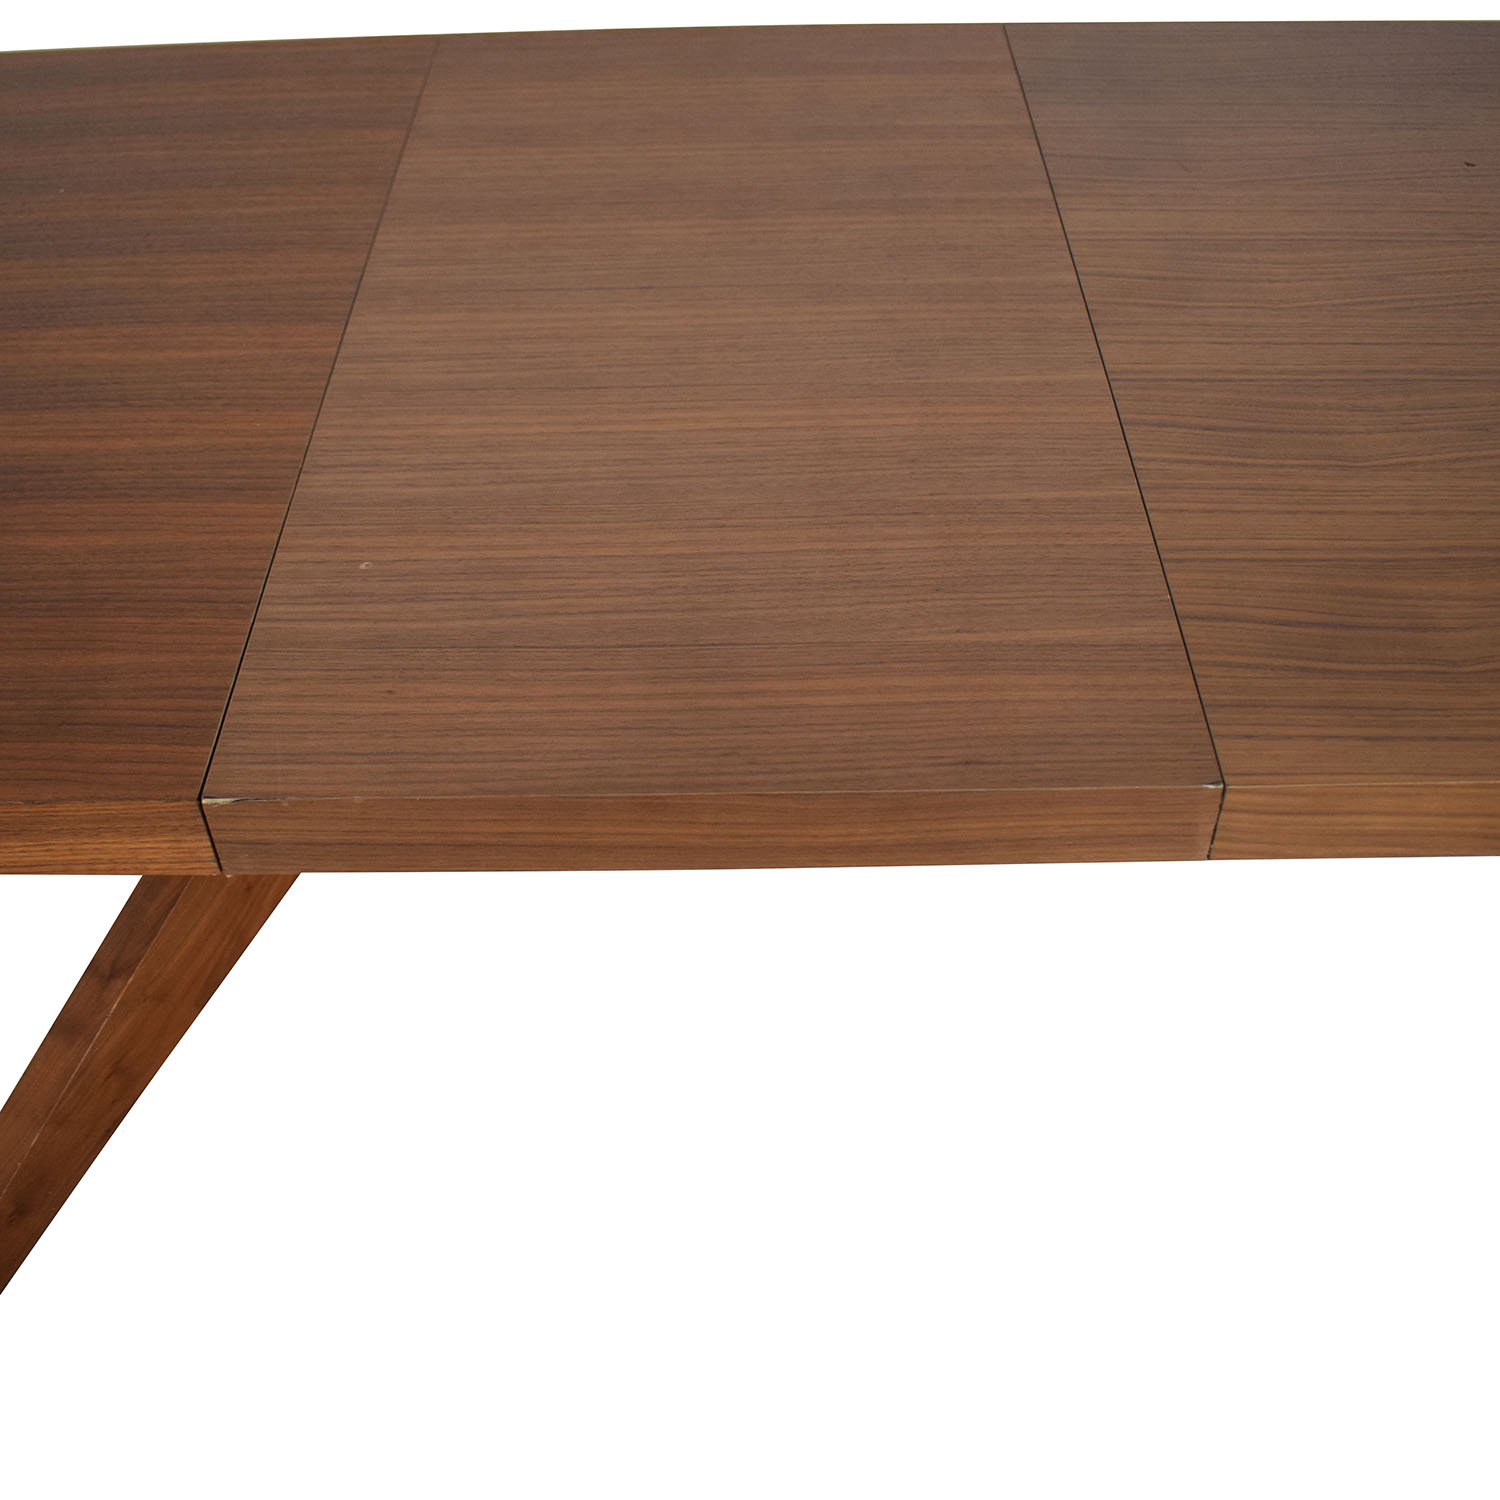 Case Matthew Hilton for Case Cross Extension Dining Table nyc